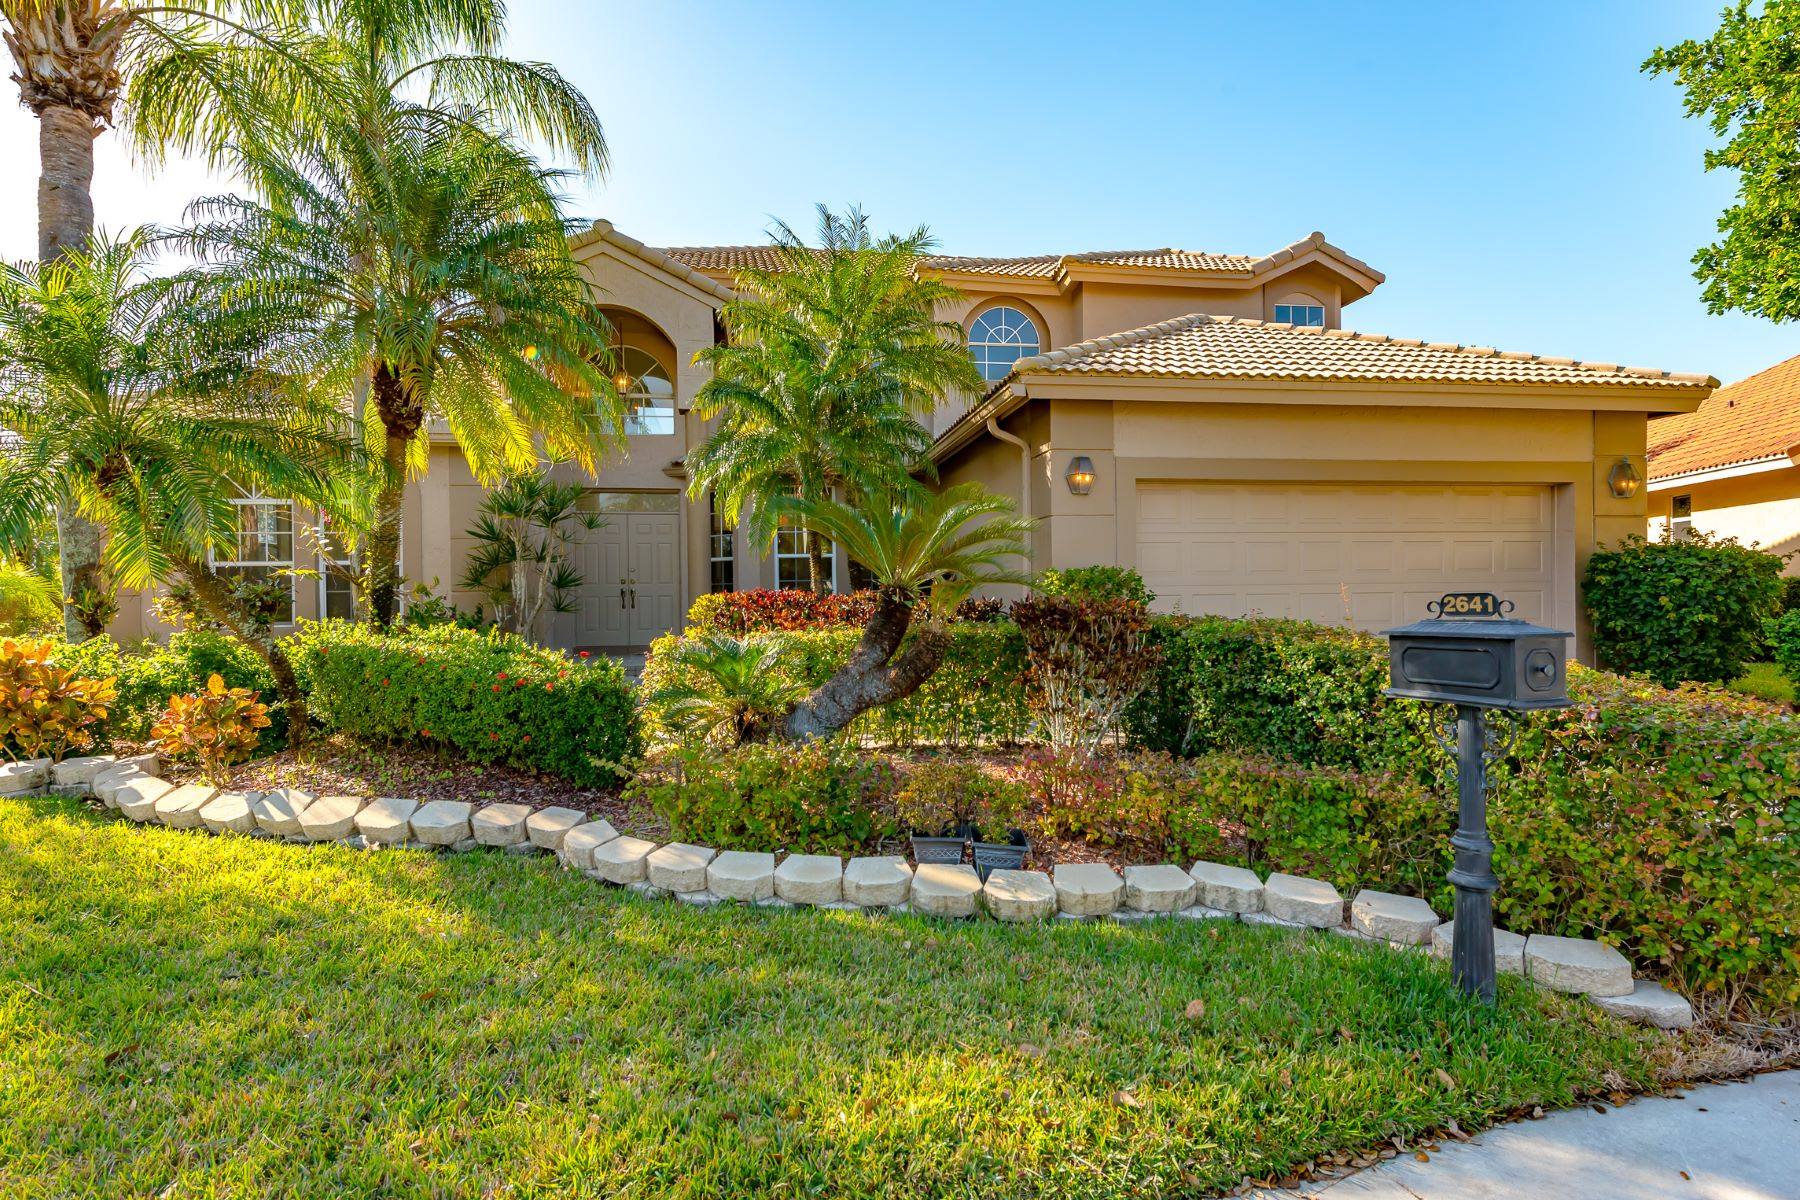 House for Rent at 2641 Nelson Ct 2641 Nelson Ct Weston, Florida 33332 United States